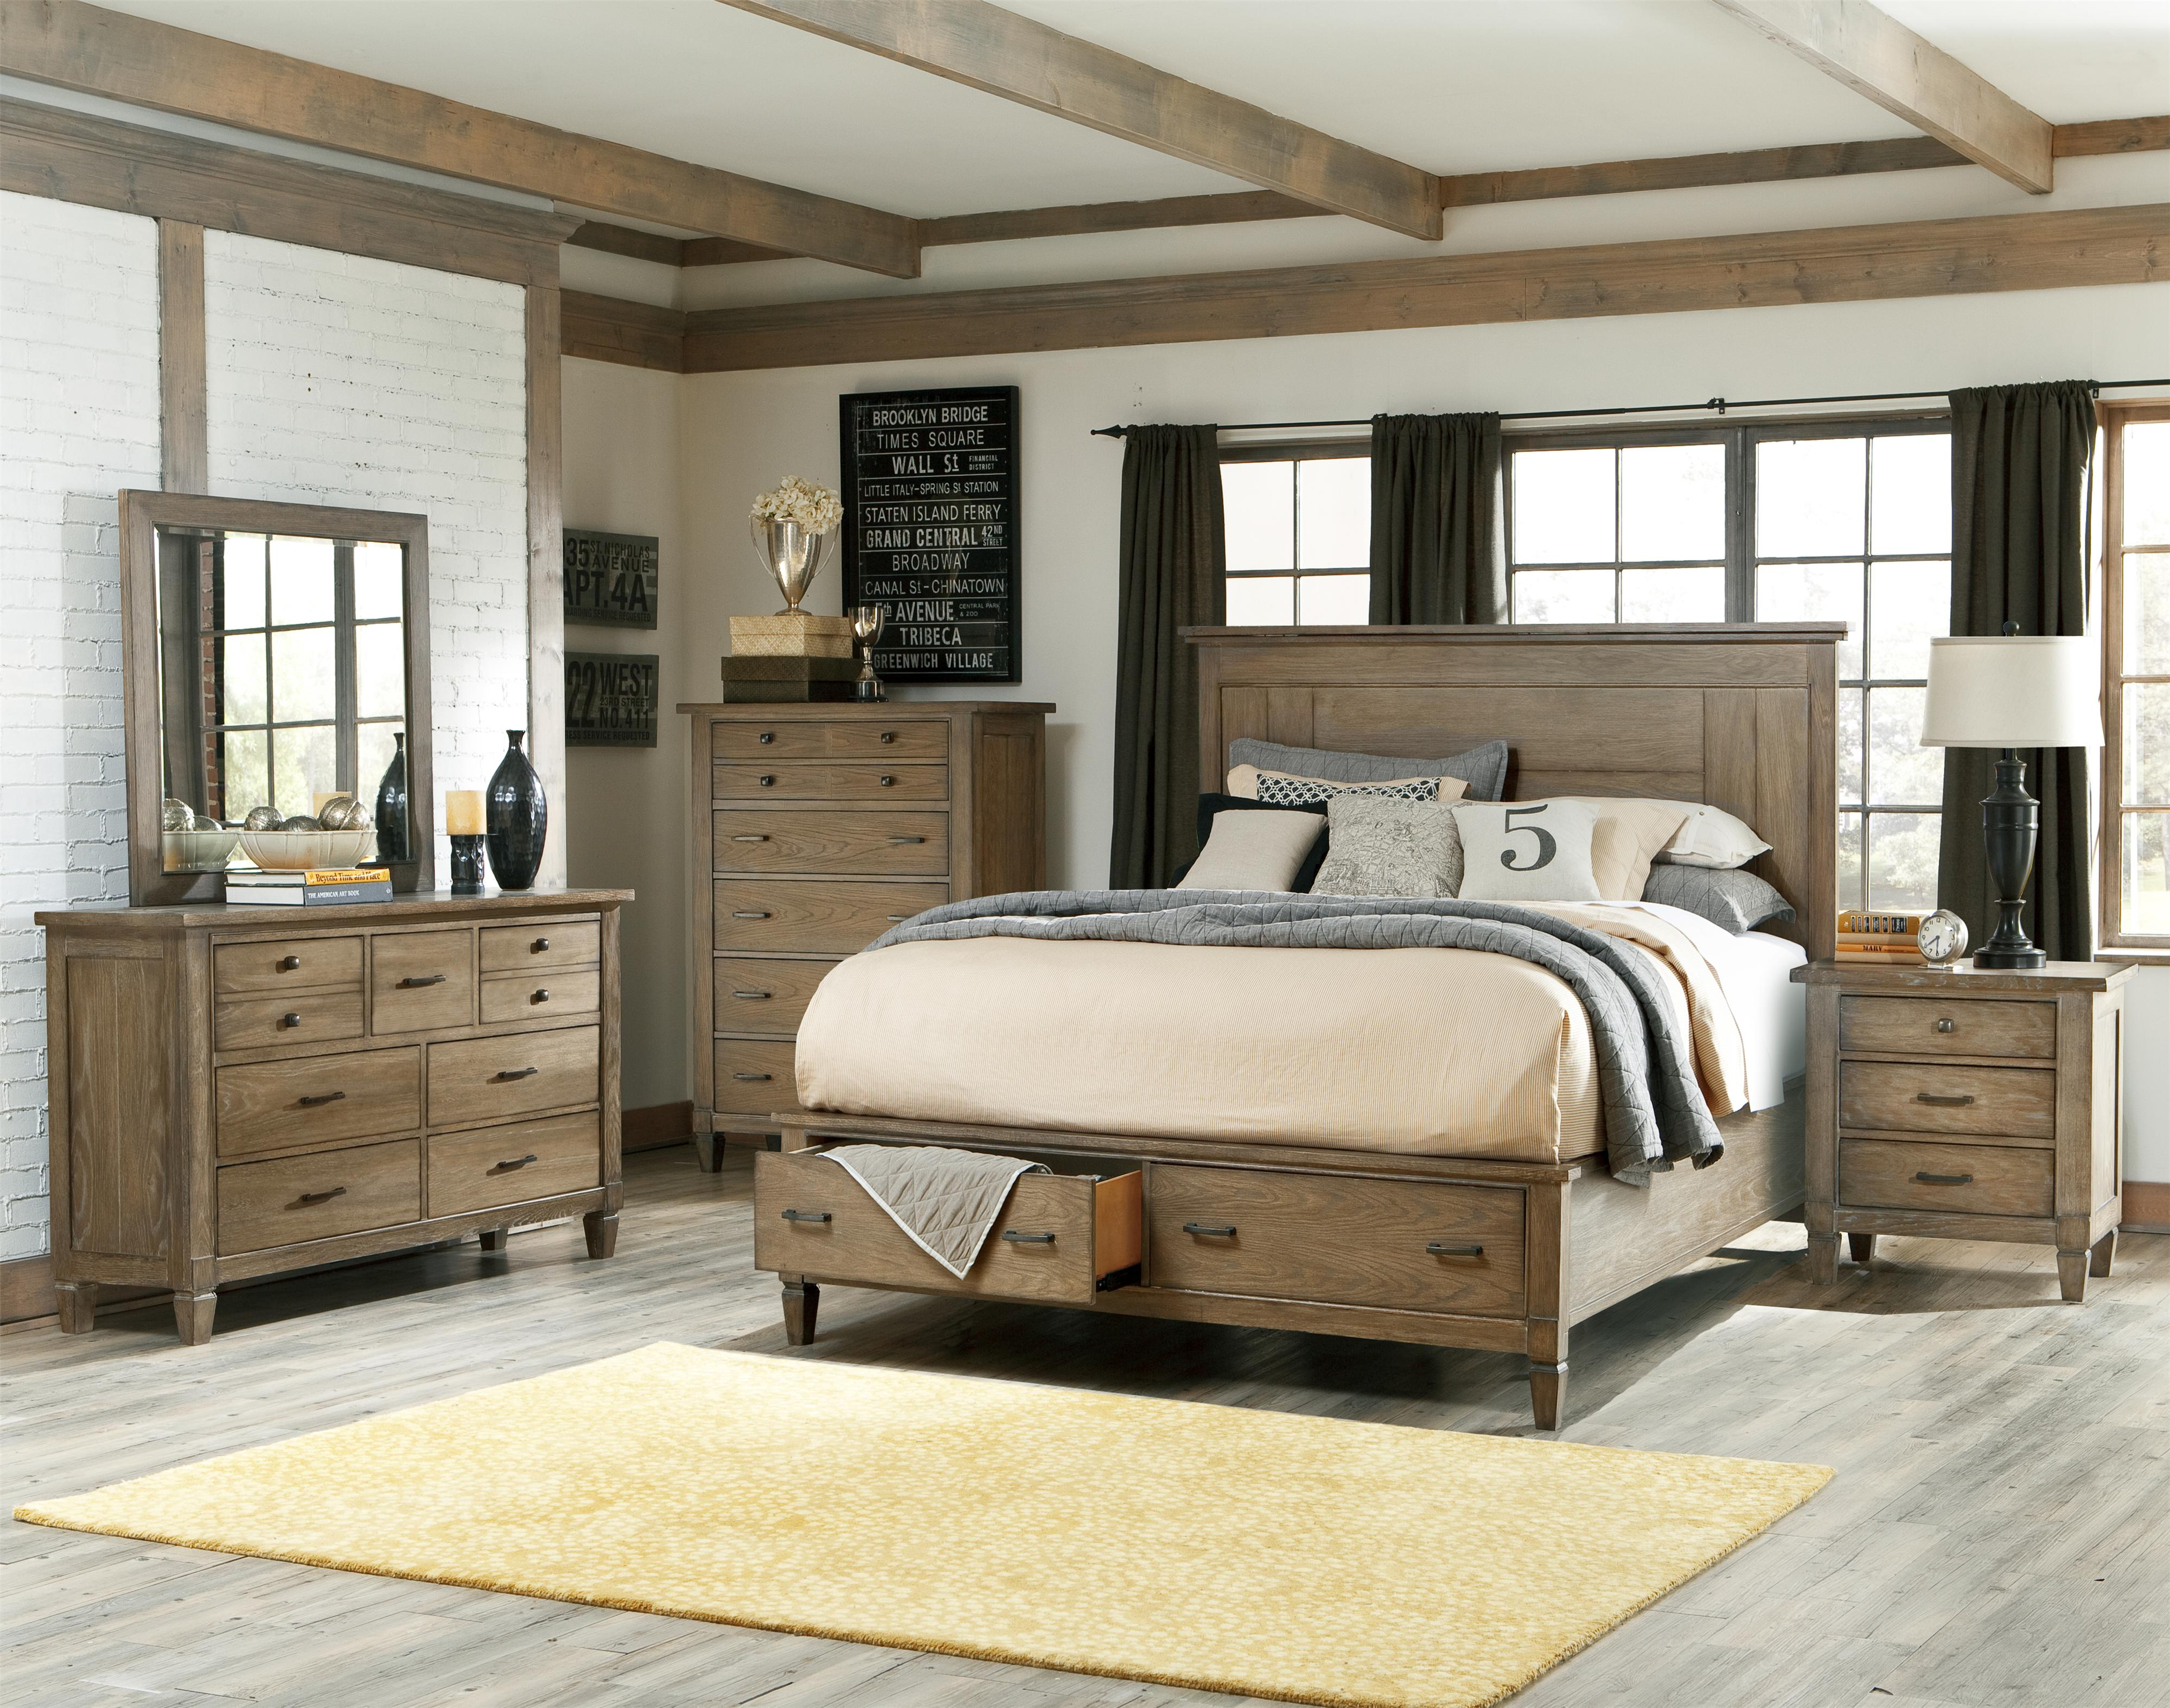 Legacy Classic Brownstone Village Queen Bedroom Group - Item Number: 2760 Q Bedroom Group 1